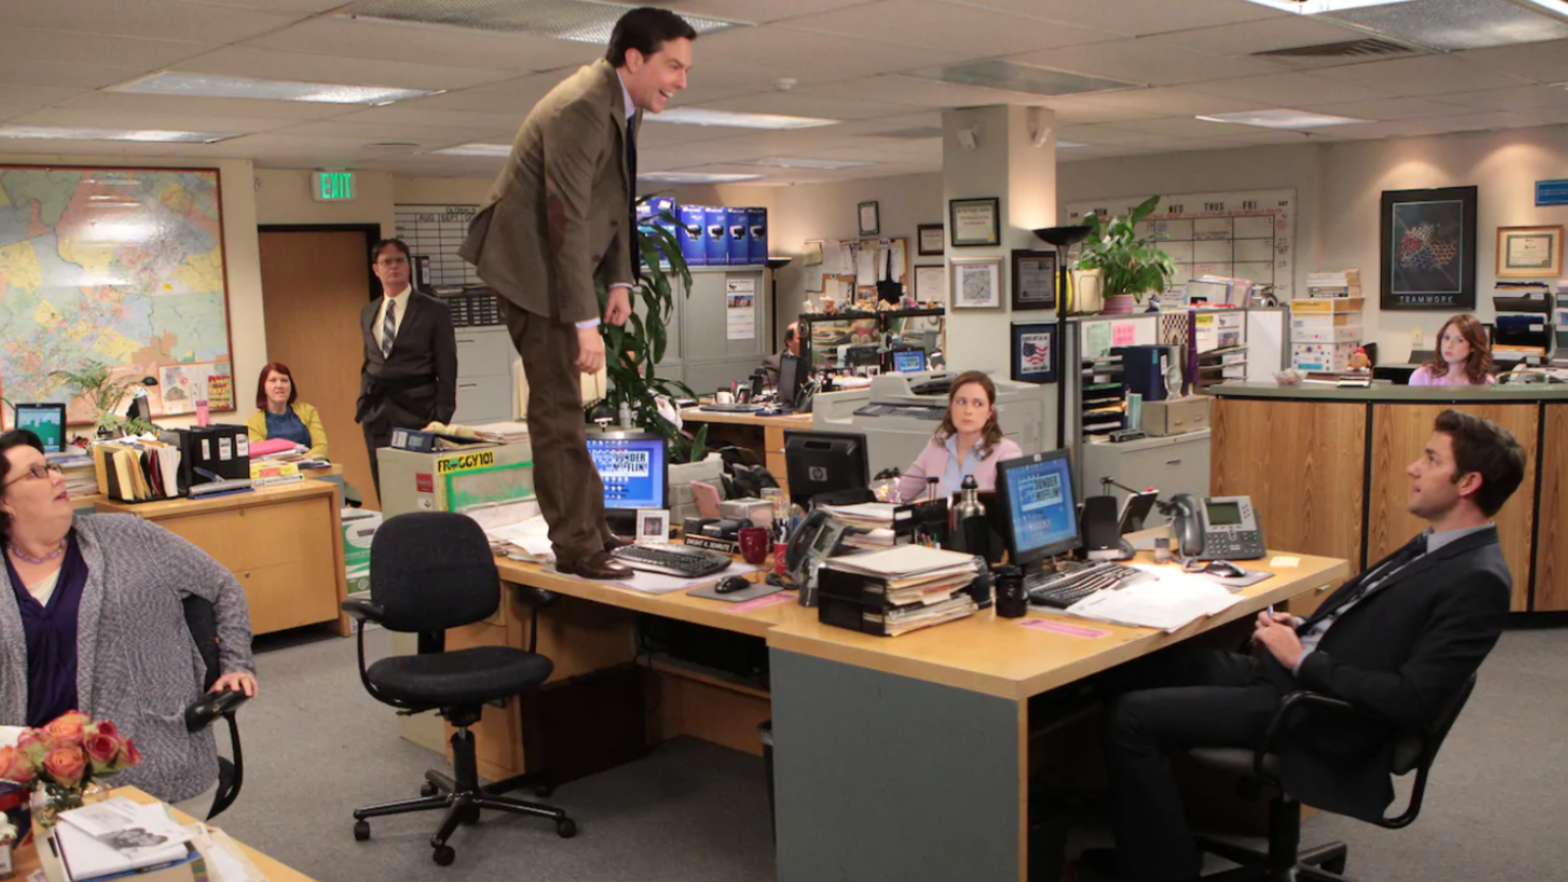 After Stealing The Office From Netflix, NBCUniversal Says Its Streaming Service Will Launch in April 2020 – Gizmodo